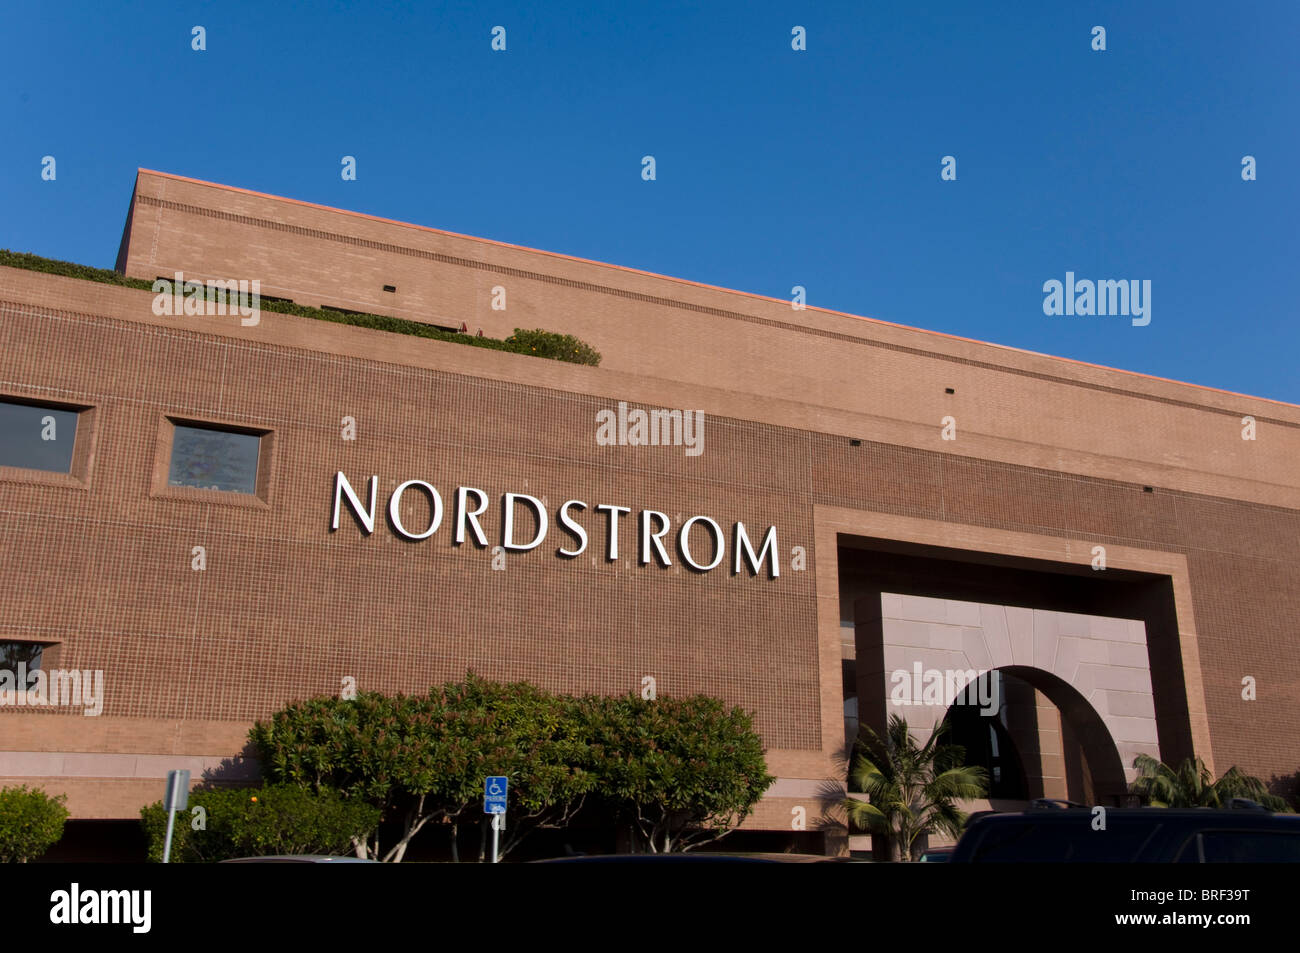 Nordstrom Store Stock Photos & Nordstrom Store Stock Images - Alamy